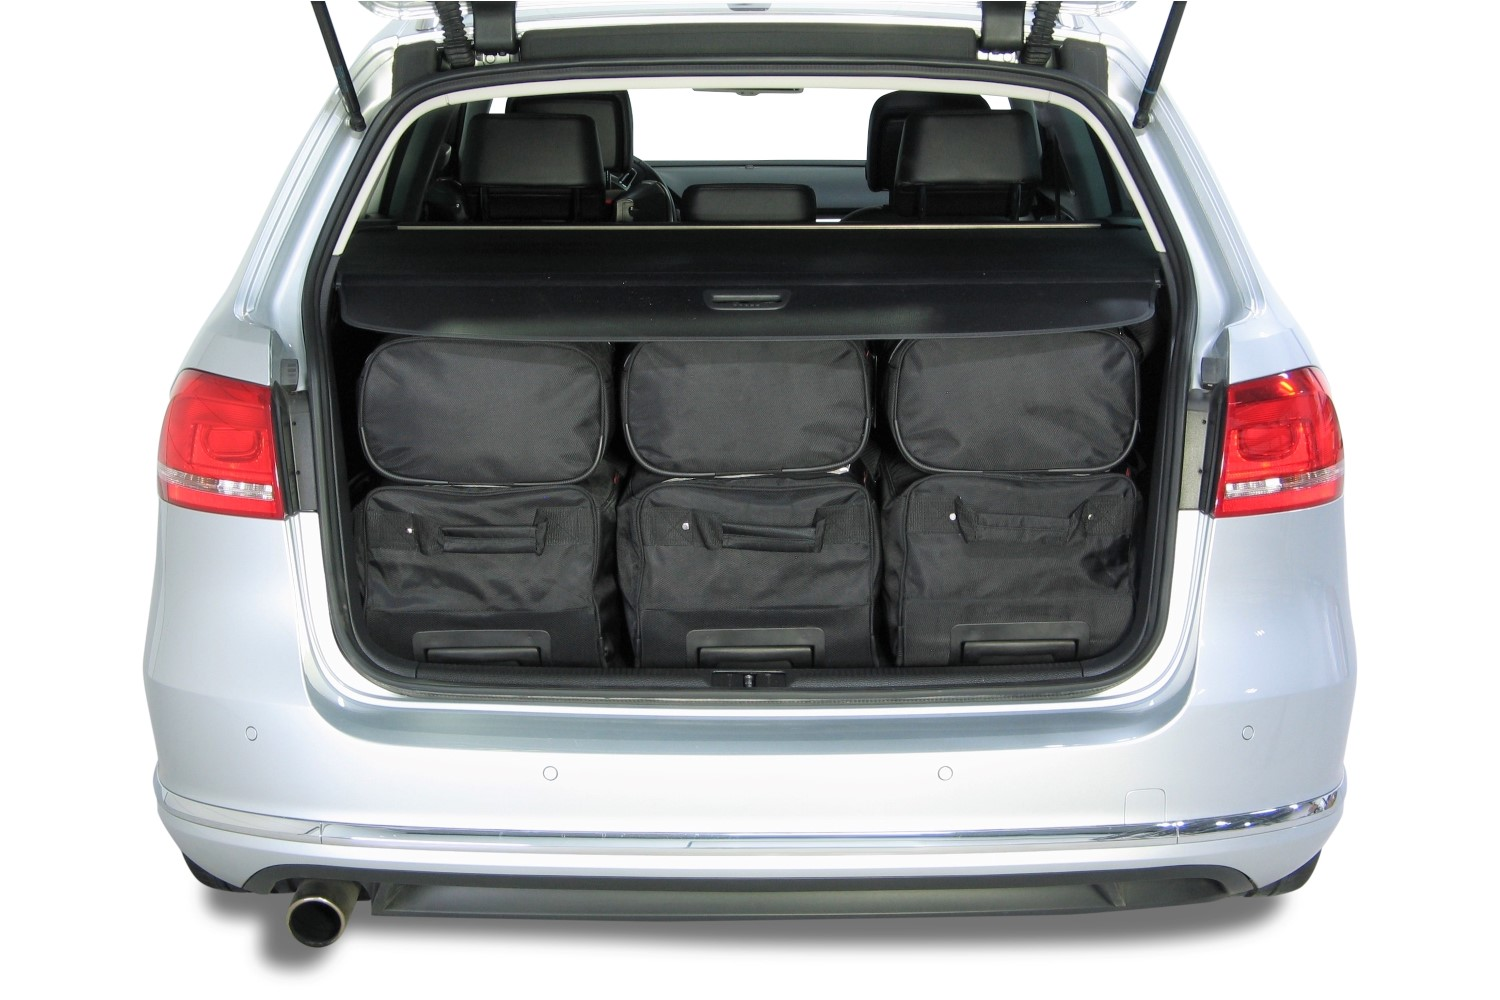 passat volkswagen passat b7 variant 2010 2014 car bags reistassenset. Black Bedroom Furniture Sets. Home Design Ideas